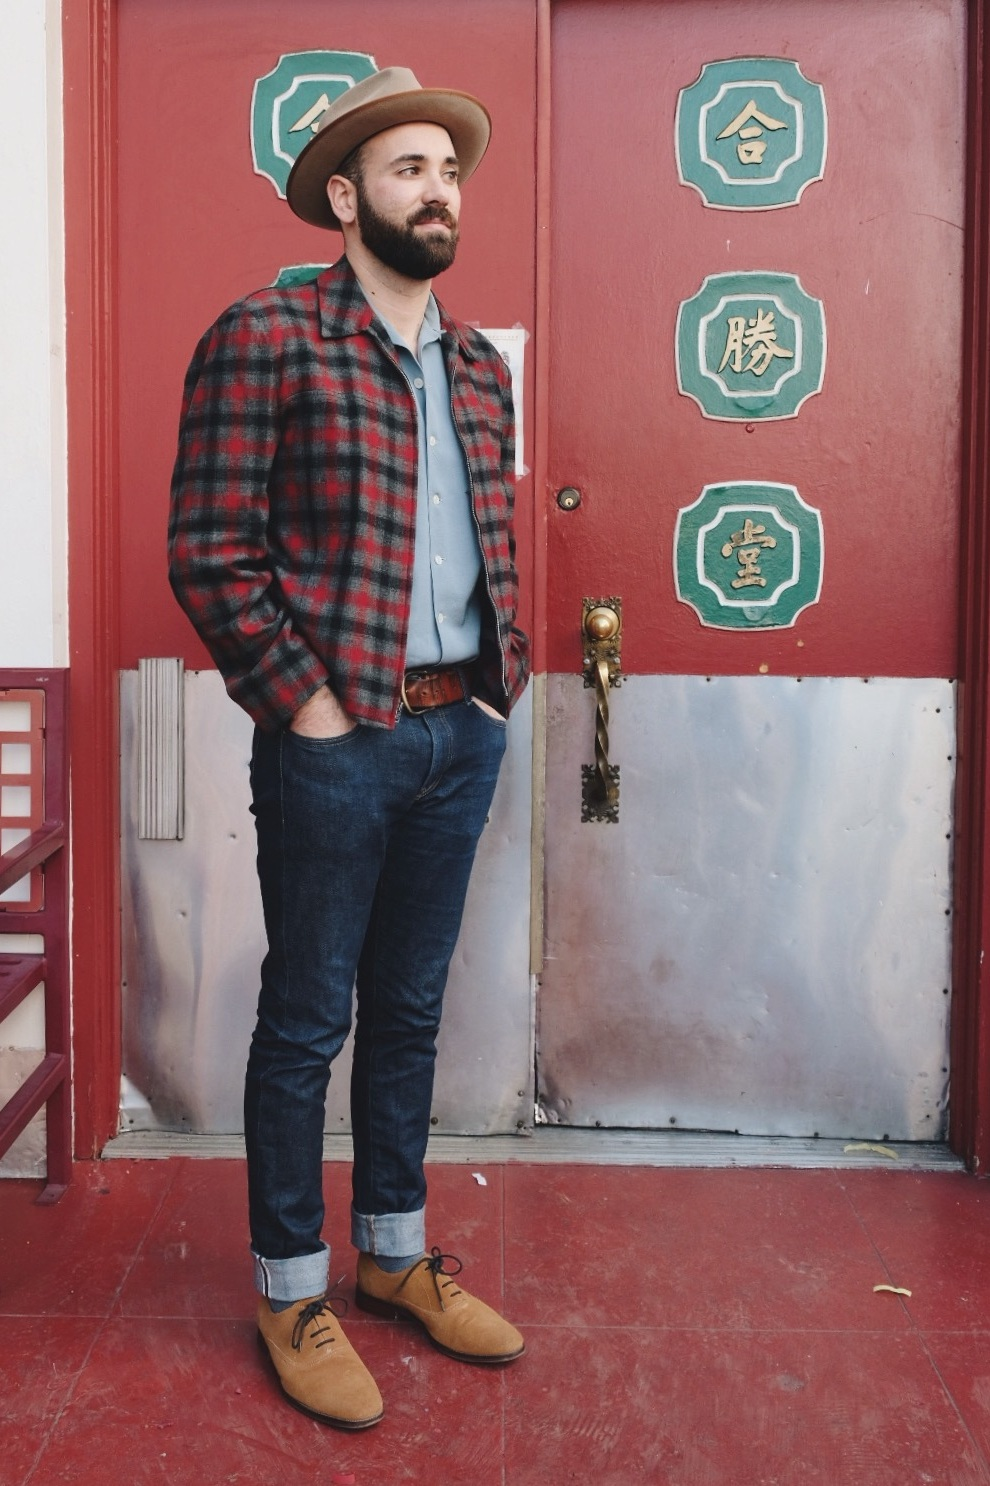 Nate in front of red ornate door in Chinatown